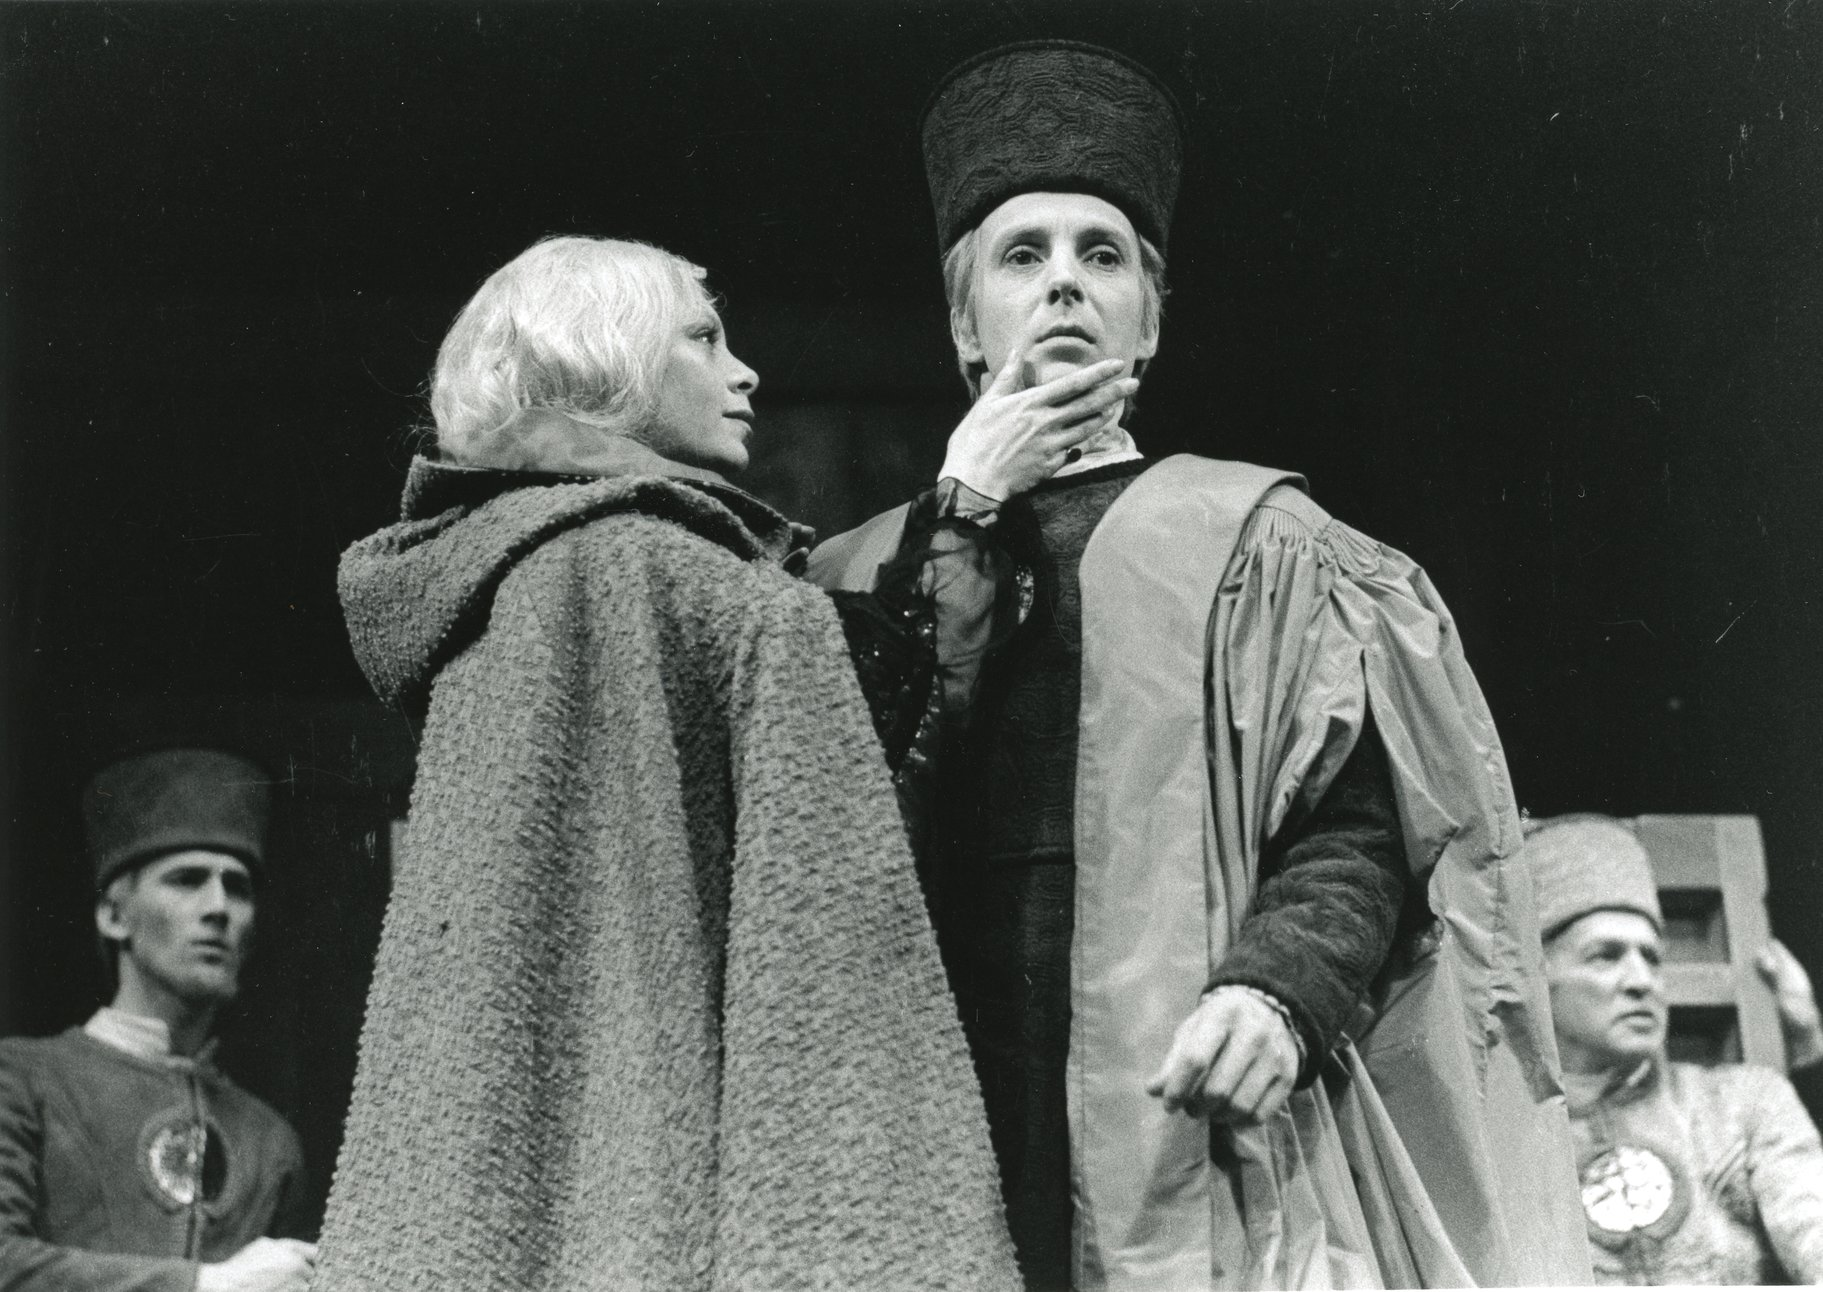 A woman in a cloak strokes a man's face.